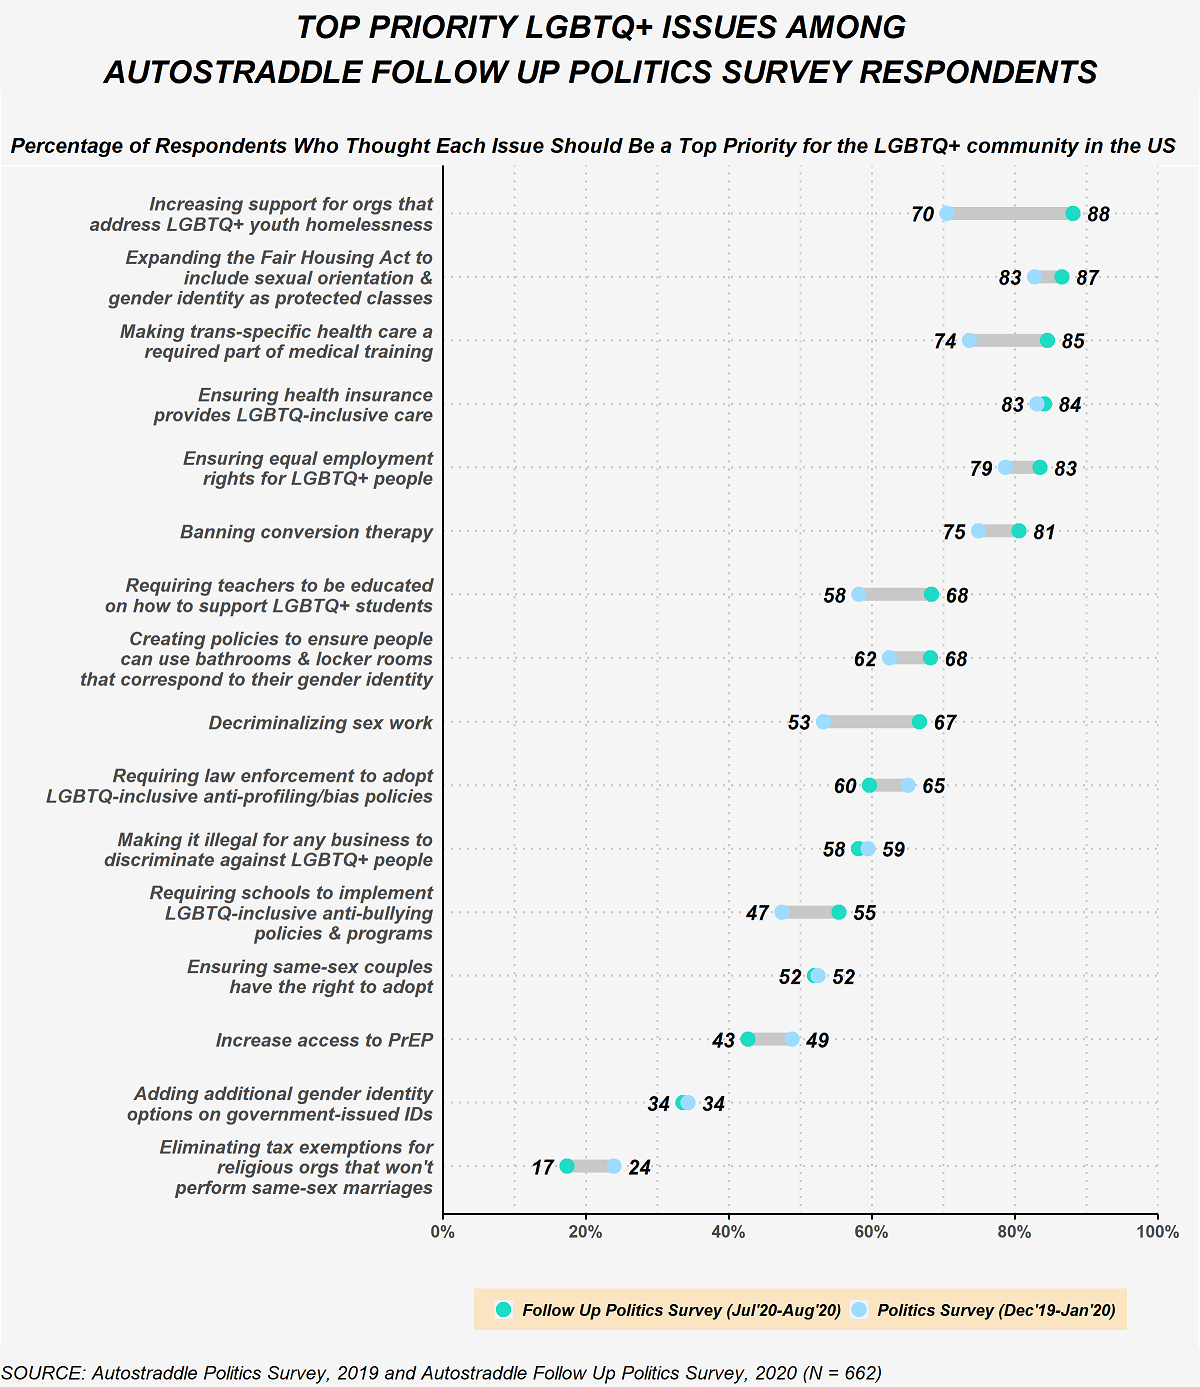 This figure compares the percent of Follow Up Survey respondents who selected each of the following LGBTQ+ issues as a top priority for the LGBTQ+ community in the U.S on the Politics Survey (in December 2019 through January 2020) and on the Follow Up Politics Survey (in July 2020 through August 2020). On the Follow Up Politics Survey 88% selected increasing support for organizations that address LGBTQ+ youth homelessness as a top priority issue compared to 70% on the earlier Politics Survey. On the Follow Up Politics Survey, 87% selected expanding the Fair Housing Act to include sexual orientation and gender identity as protected classes as a top priority issue compared to 83% on the earlier Politics Survey. On the Follow Up Politics Survey 85% selected making trans-specific health care a required part of medical training as a top priority issue compared to 74% on the earlier Politics Survey. On the Follow Up Politics Survey 84% selected ensuring health insurance provides LGBTQ-inclusive care as a top priority issue compared to 83% on the earlier Politics Survey. On the Follow Up Politics Survey 83% selected ensuring equal employment rights for LGBTQ+ people as a top priority issue compared to 79% on the earlier Politics Survey. On the Follow Up Politics Survey 81% selected banning conversion therapy as a top priority issue compared to 75% on the earlier Politics Survey. On the Follow Up Politics Survey 68% selected requiring teachers to be educated on how to support LGBTQ+ students as a top priority issue compared to 58% on the earlier Politics Survey. On the Follow Up Politics Survey 68% selected creating policies to ensure people can use bathrooms and locker rooms that correspond to their gender identity as a top priority issue compared to 62% on the earlier Politics Survey. On the Follow Up Politics Survey 67% selected decriminalizing sex work as a top priority issue compared to 53% on the earlier Politics Survey. On the Follow Up Politics survey 60% selected requiring law enforcement to adopt LGBTQ-inclusive anti-profiling/bias policies as a top priority issue compared to 65% on the earlier Politics Survey. On the Follow Up Politics Survey 58% selected making it illegal for any business to discriminate against LGBTQ+ people as a top priority issue compared to 59% on the earlier Politics Survey. On the Follow Up Politics Survey 55% selected requiring schools to implement LGBTQ-inclusive anti-bullying policies and programs as a top priority issue compared to 47% on the earlier Politics Survey. On the Follow Up Politics Survey 52% selected ensuring same-sex couples have the right to adopt as a top priority issue compared to 52% on the earlier Politics Survey. On the Follow Up Politics Survey 43% selected increasing access to PrEP as a top priority issue compared to 49% on the earlier Politics Survey. On the Follow Up Politics Survey 34% selected adding additional gender identity options on government-issued IDs as a top priority issue compared to 34% on the earlier Politics Survey. On the Follow Up Politics Survey 17% selected eliminating tax exemptions for religious organizations that won't perform same-sex marriages as a top priority issue compared to 24% on the earlier Politics Survey.